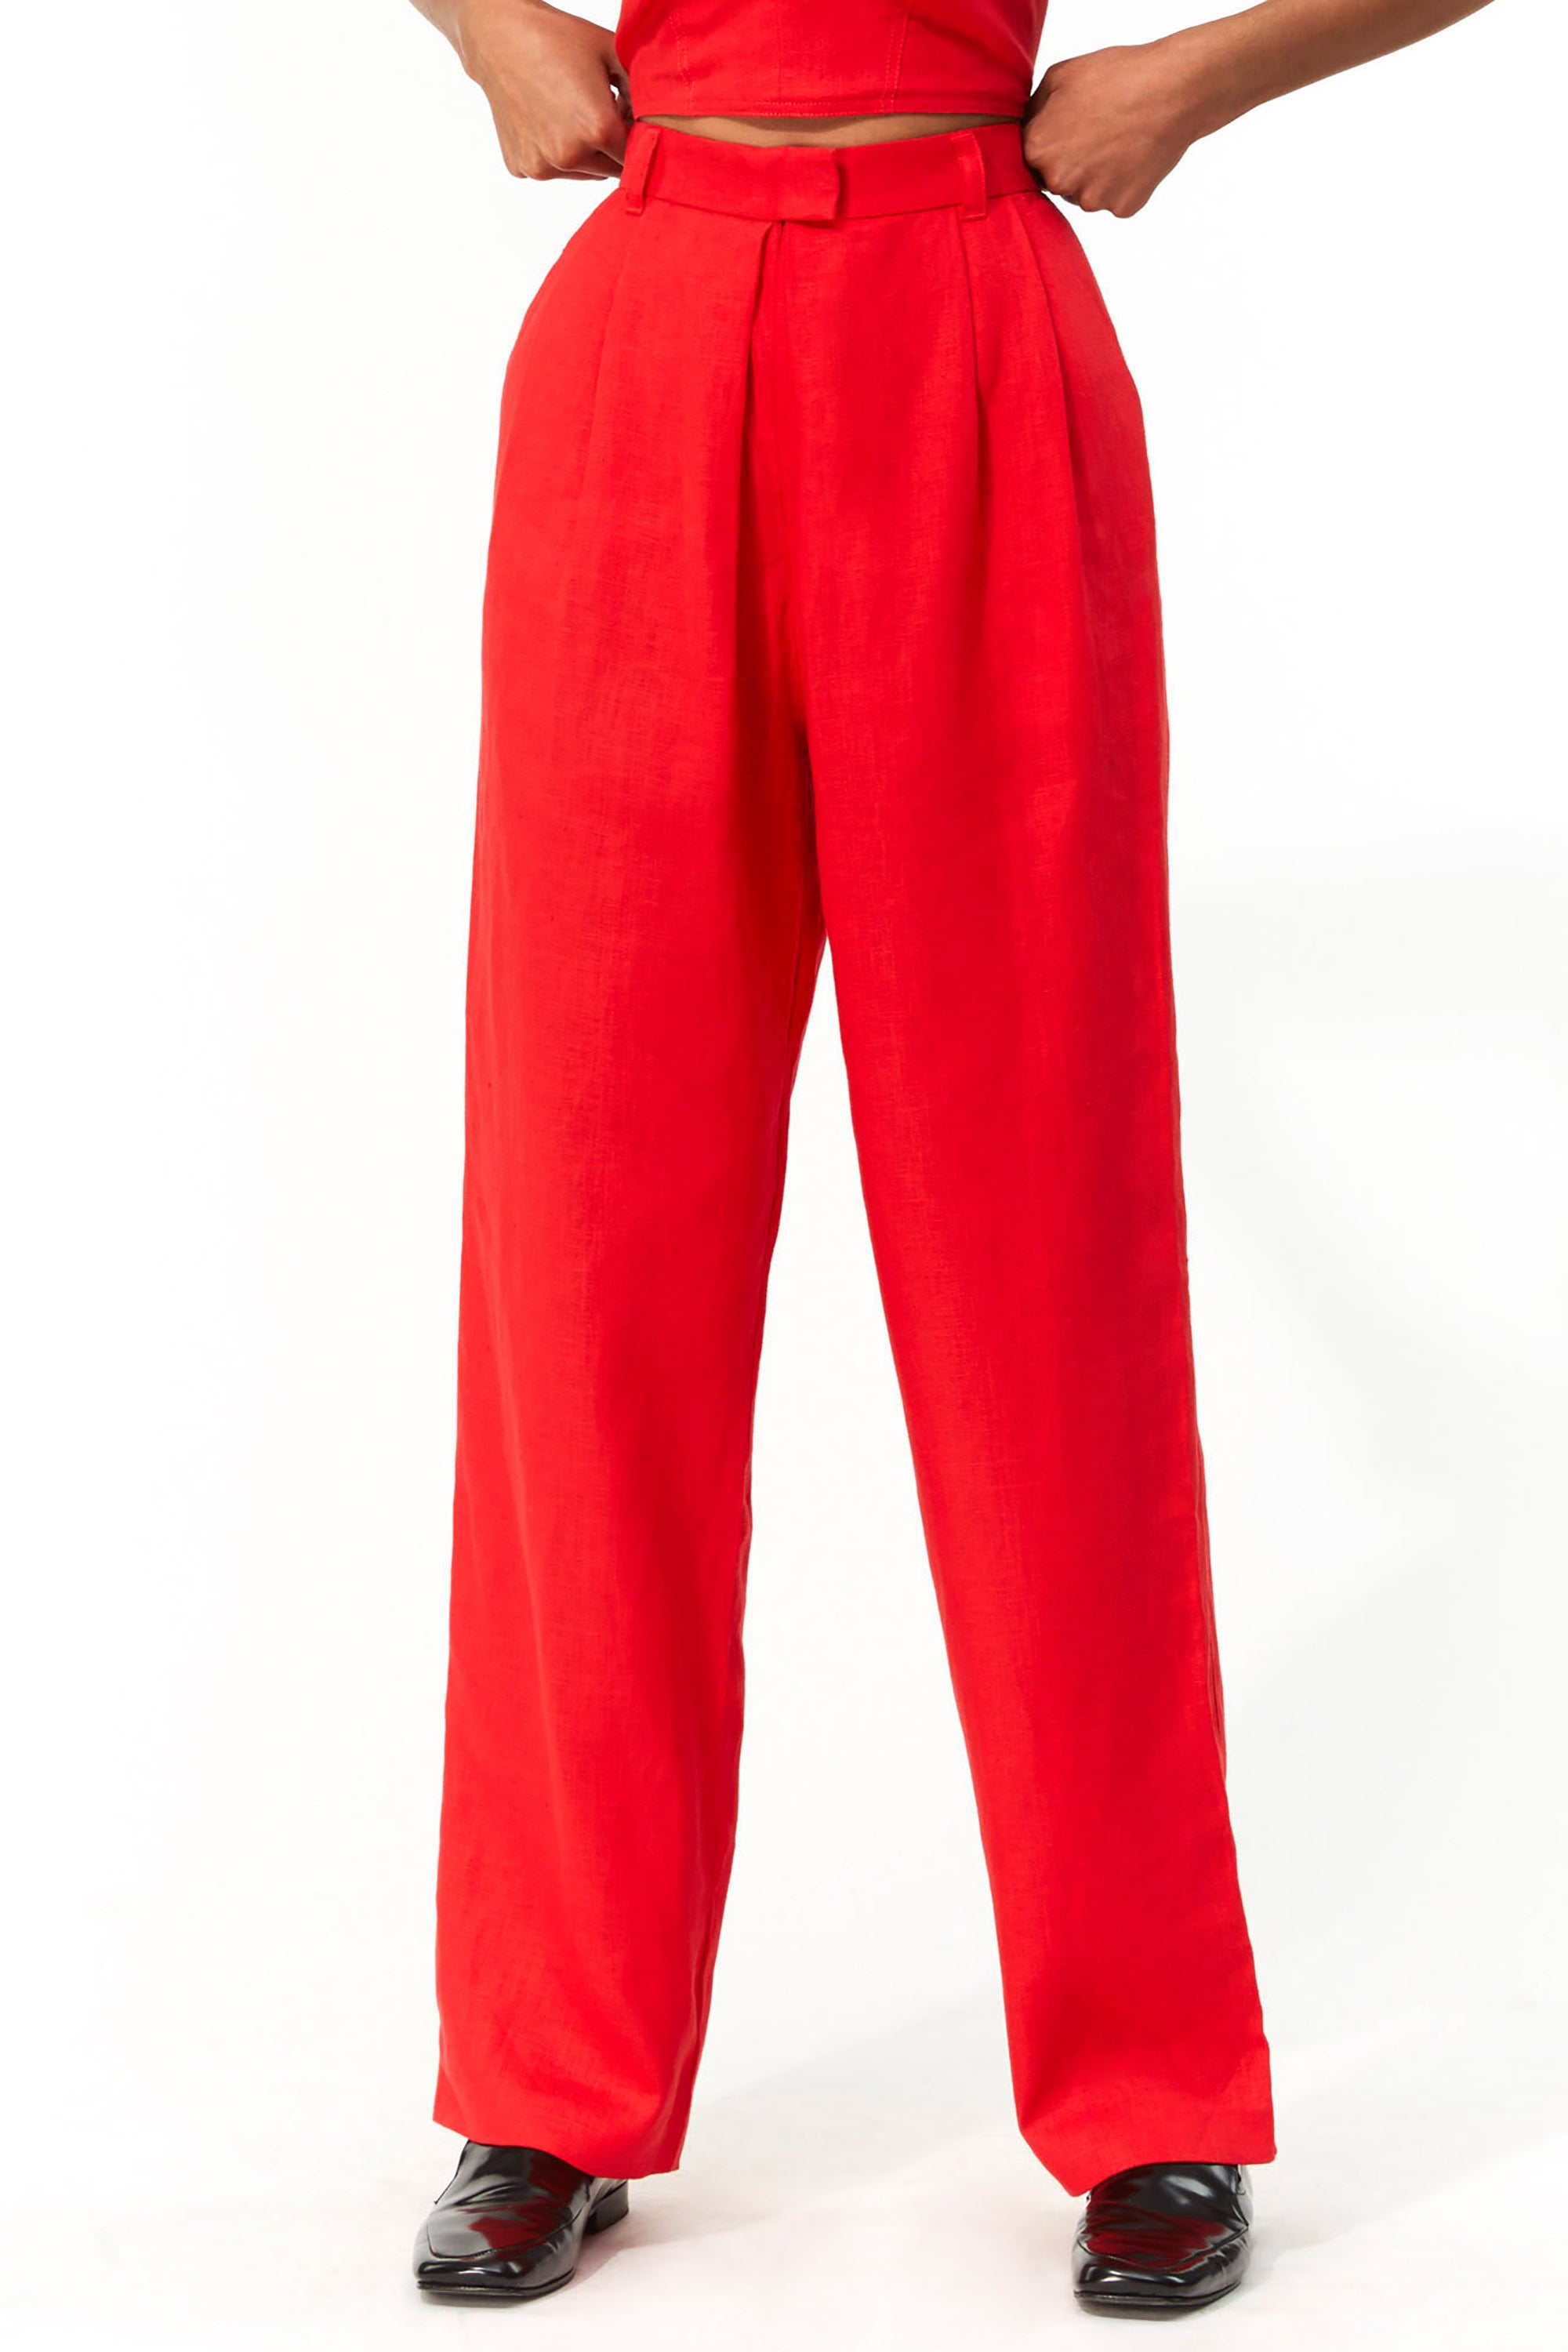 Mara Hoffman Red Eldora Pant in hemp (front detail)